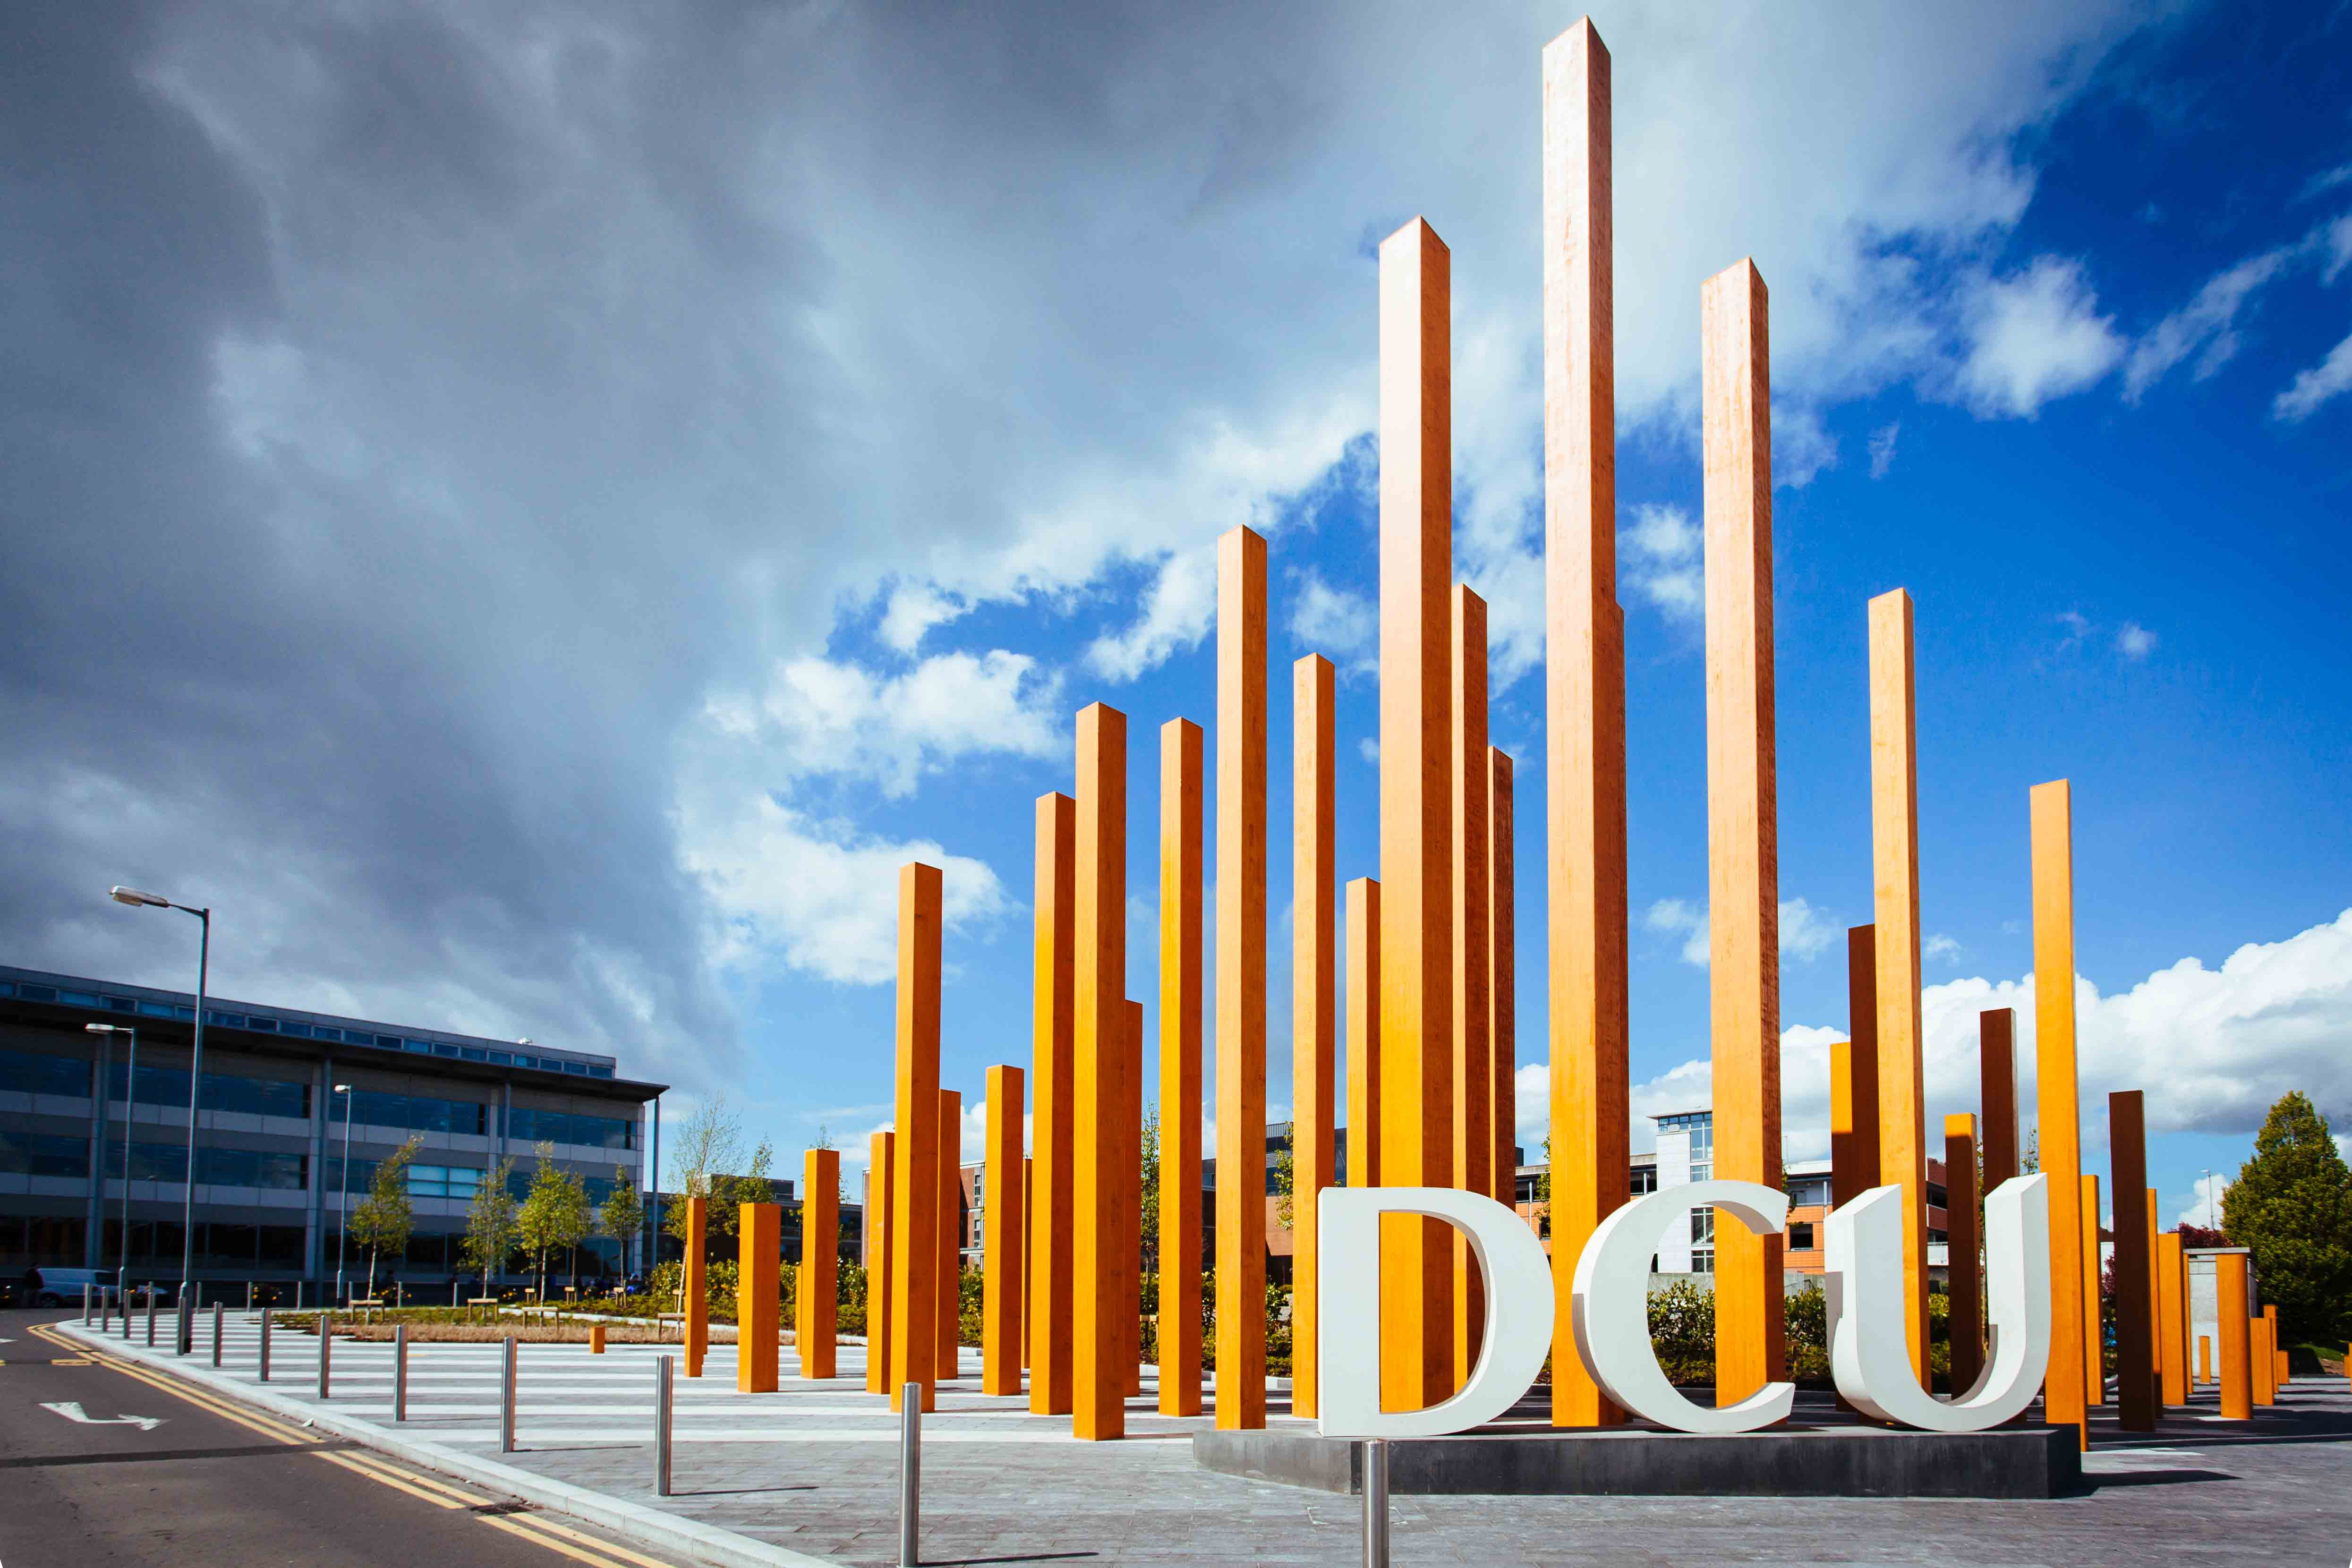 Dublin City University, DCU - New member of EduCo Global